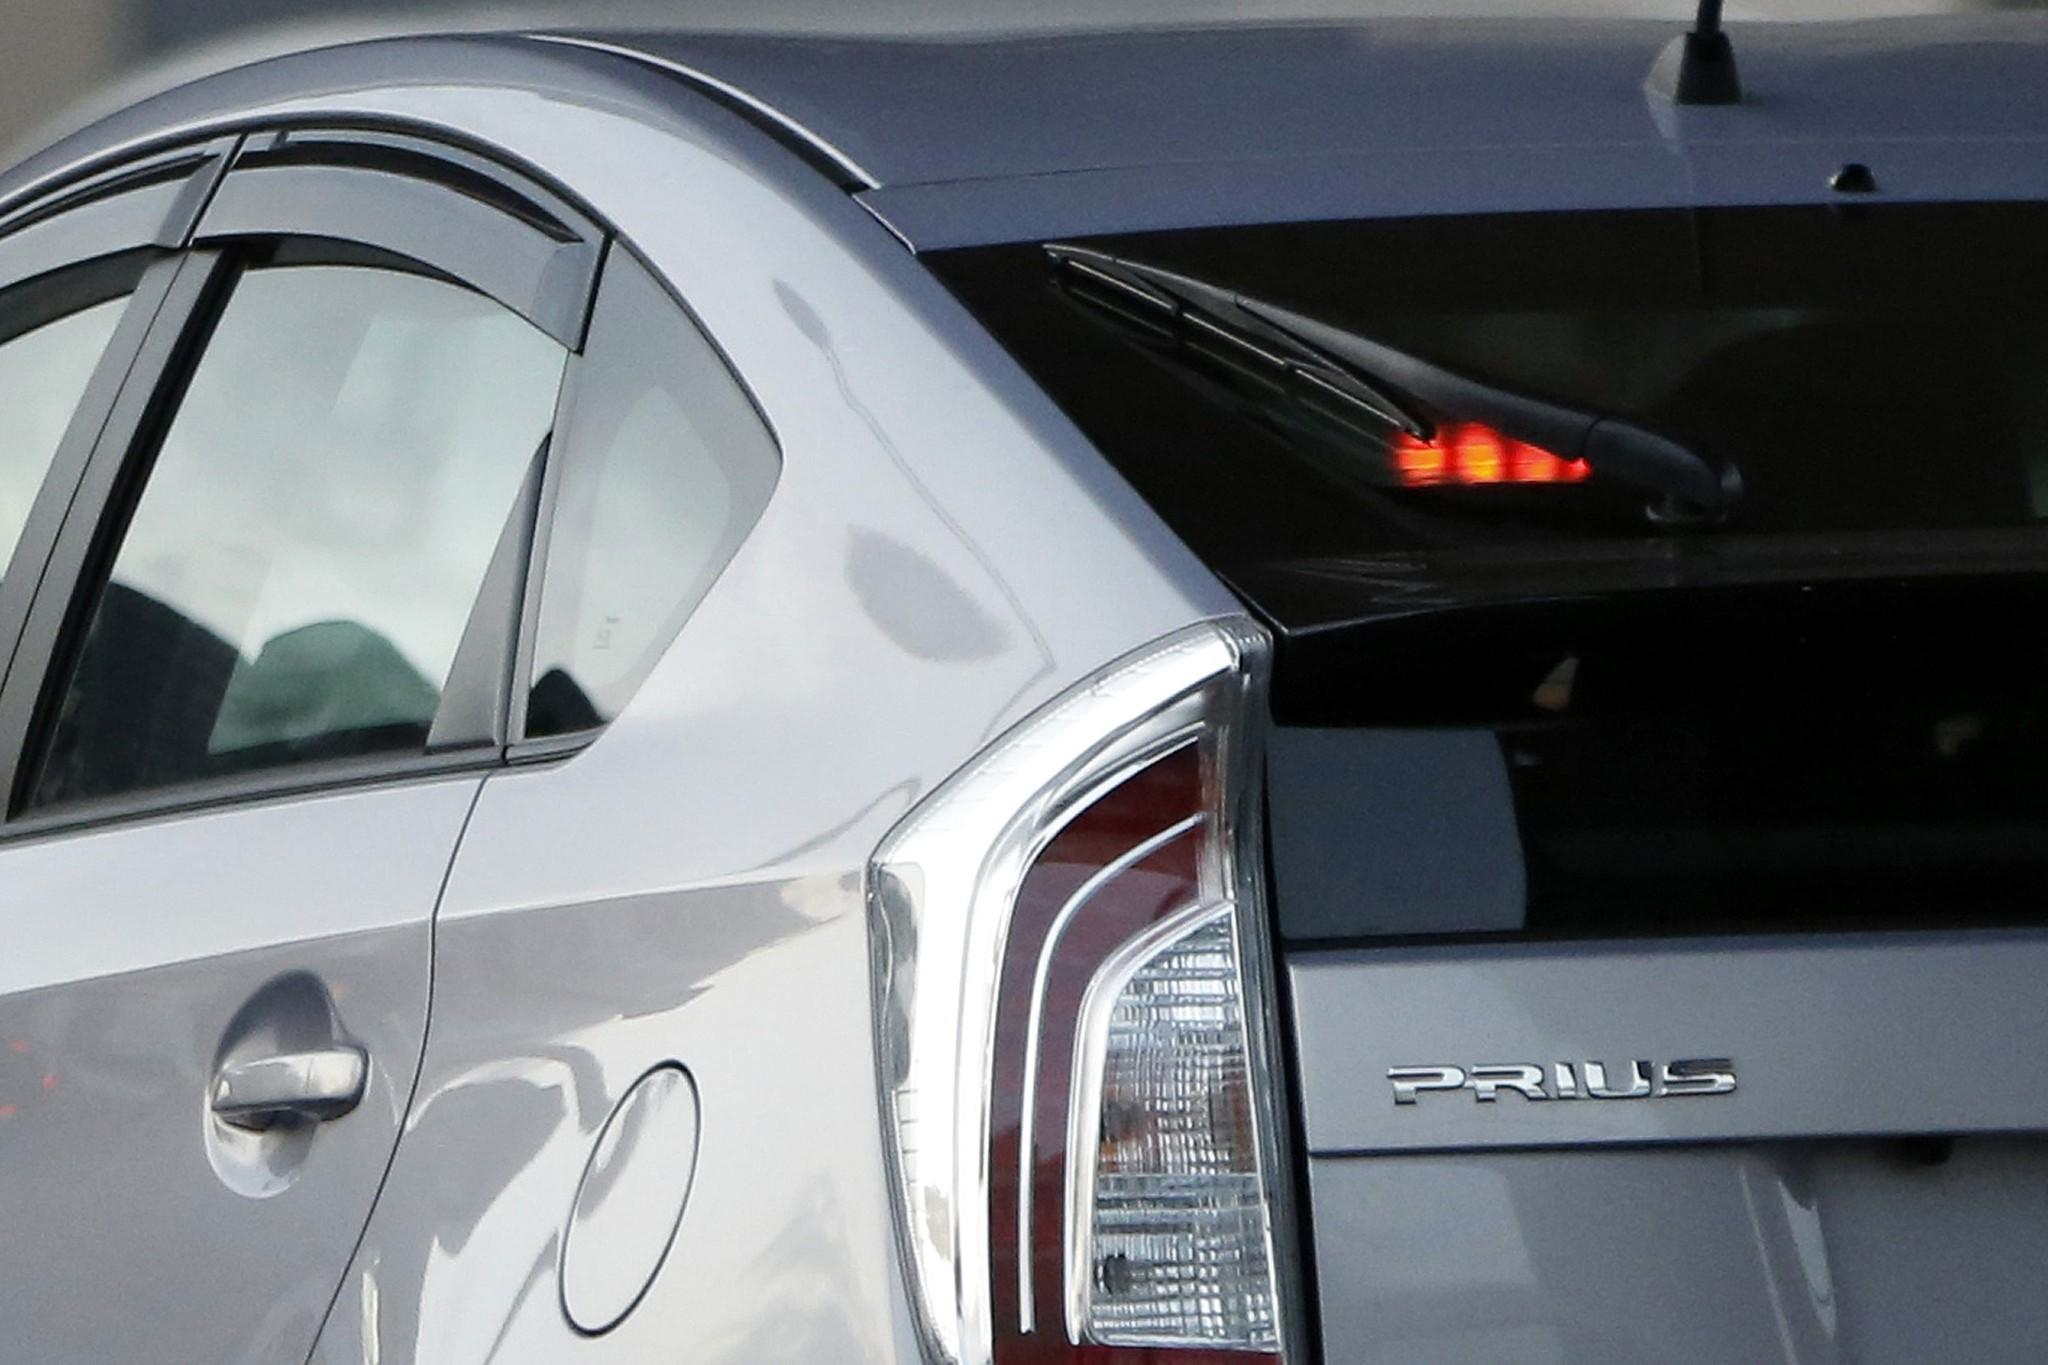 Toyota the world s largest automaker will recall more than half of the prius vehicles